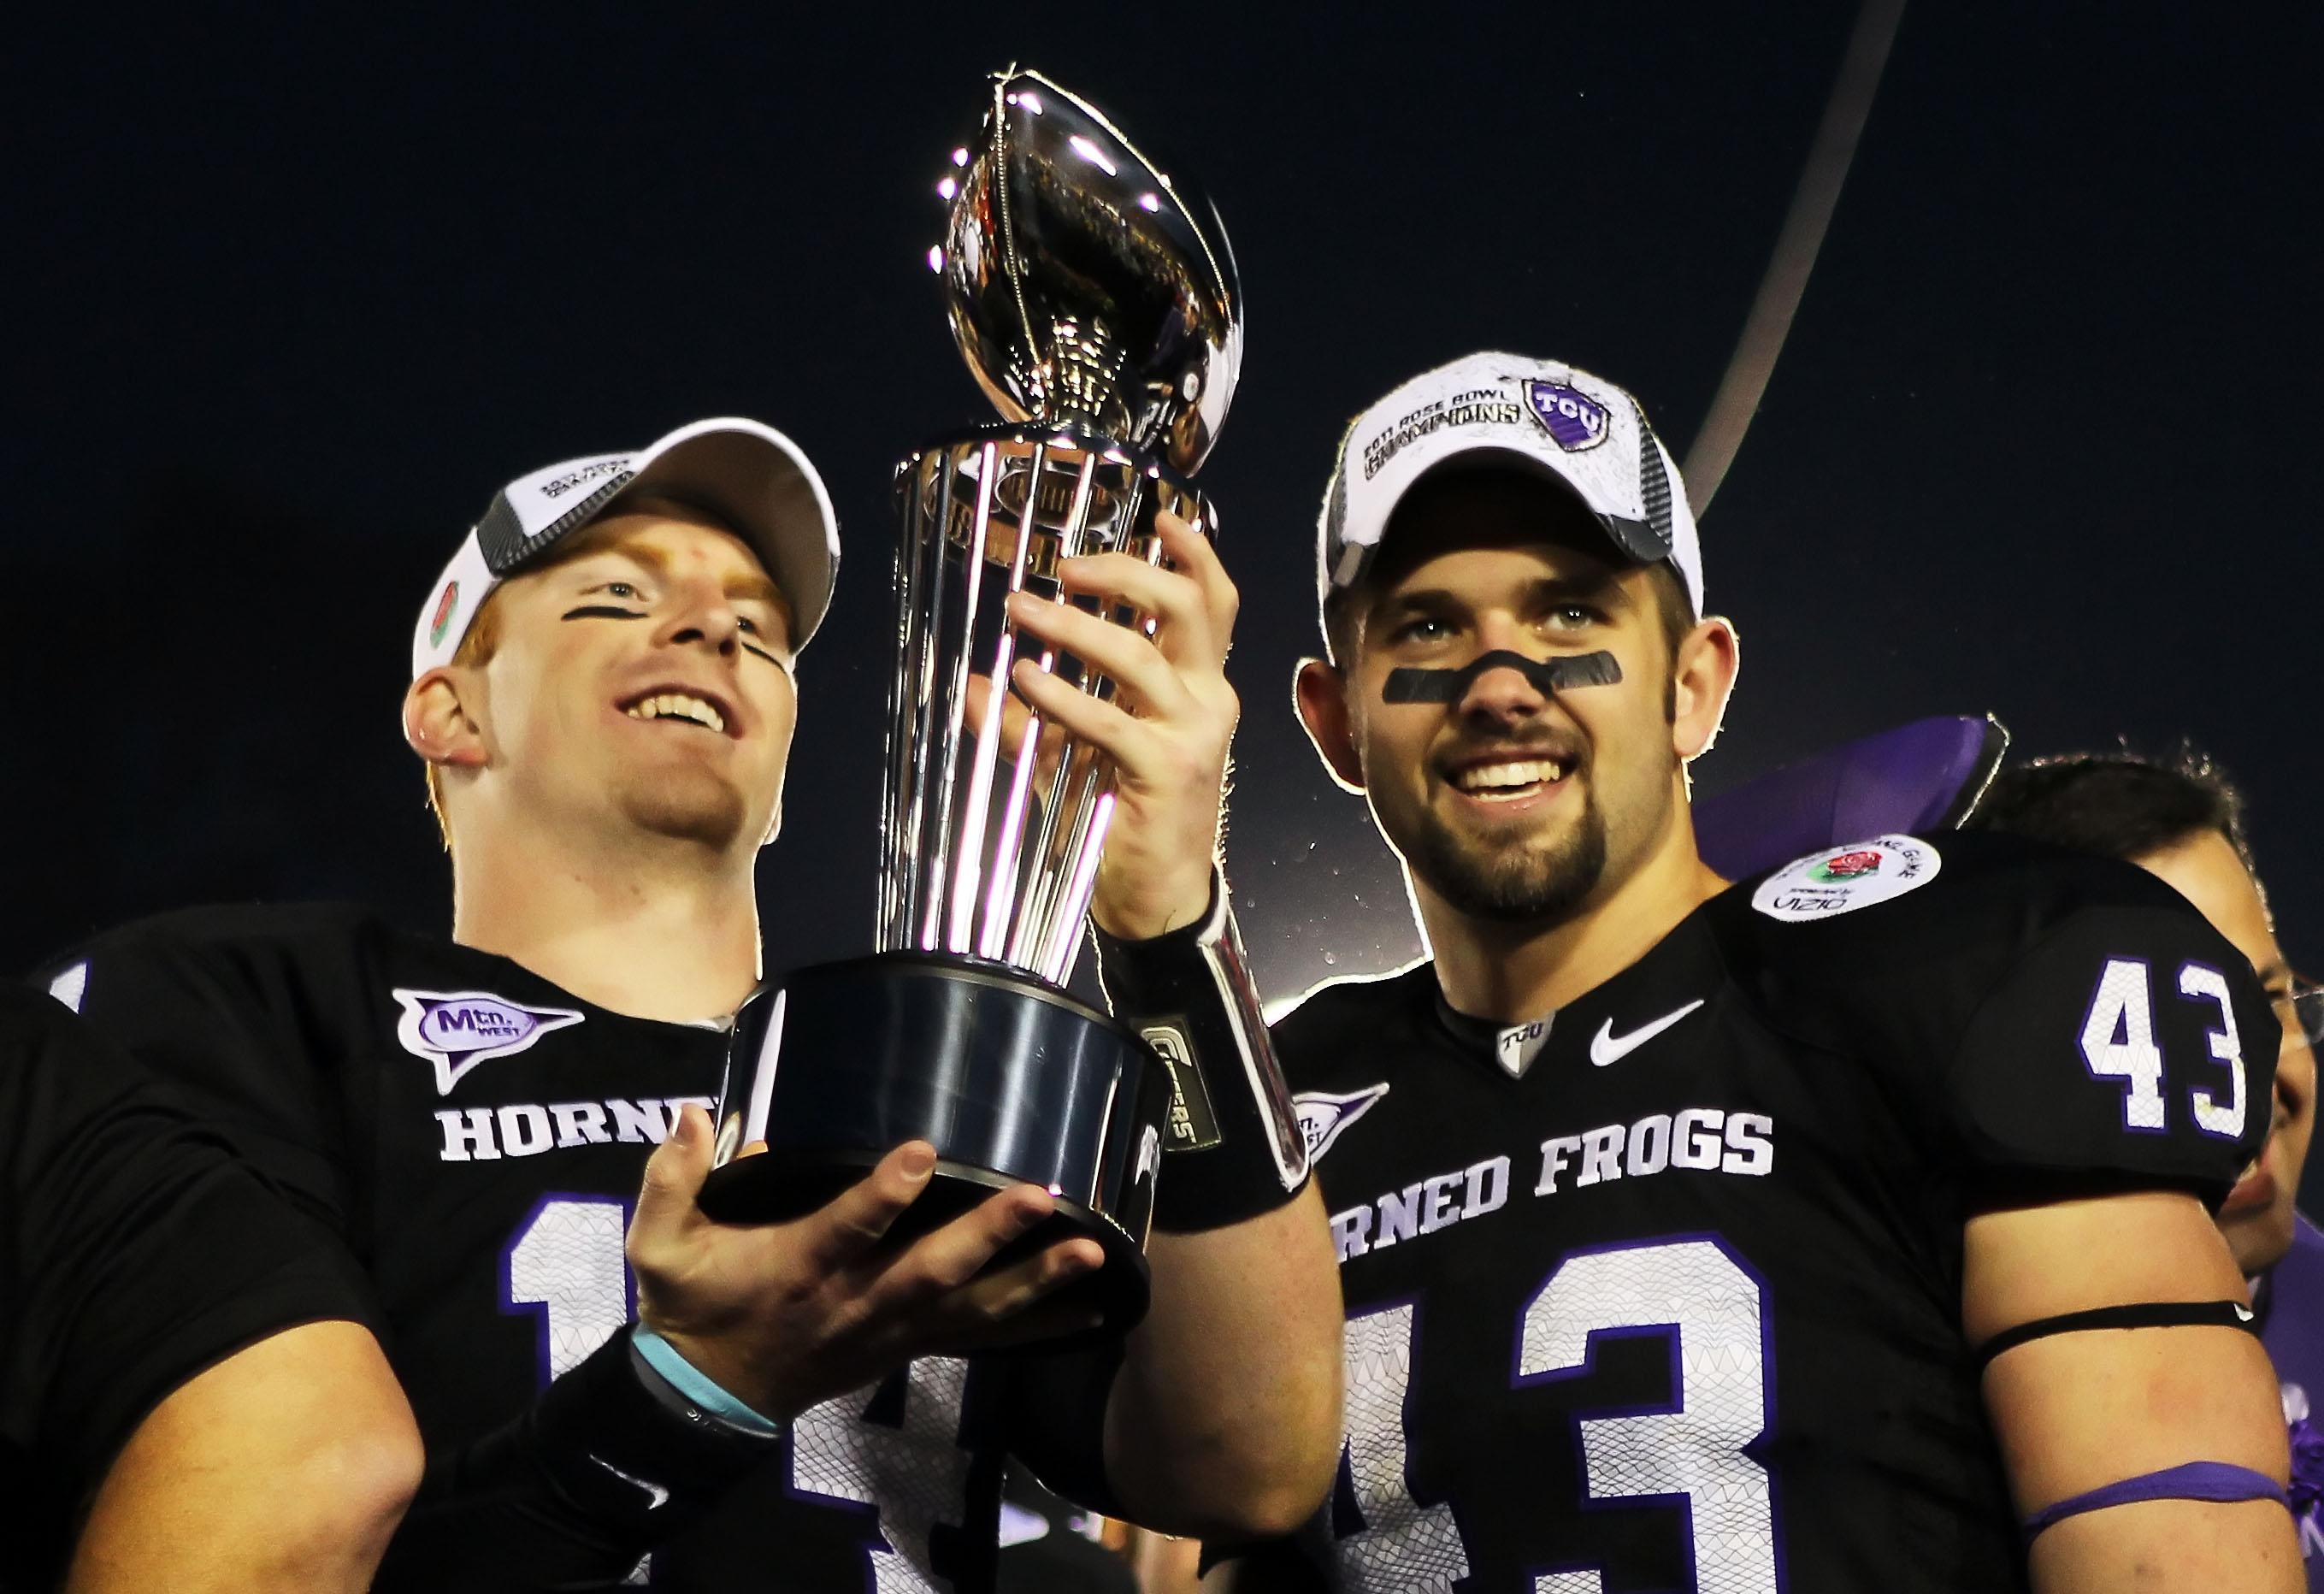 PASADENA, CA - JANUARY 01:  Quarterback Andy Dalton #14 and linebacker Tank Carder #43 of the TCU Horned Frogs hold the Rose Bowl Championship Trophy after defeating the Wisconsin Badgers 21-19 in the 97th Rose Bowl game on January 1, 2011 in Pasadena, Ca